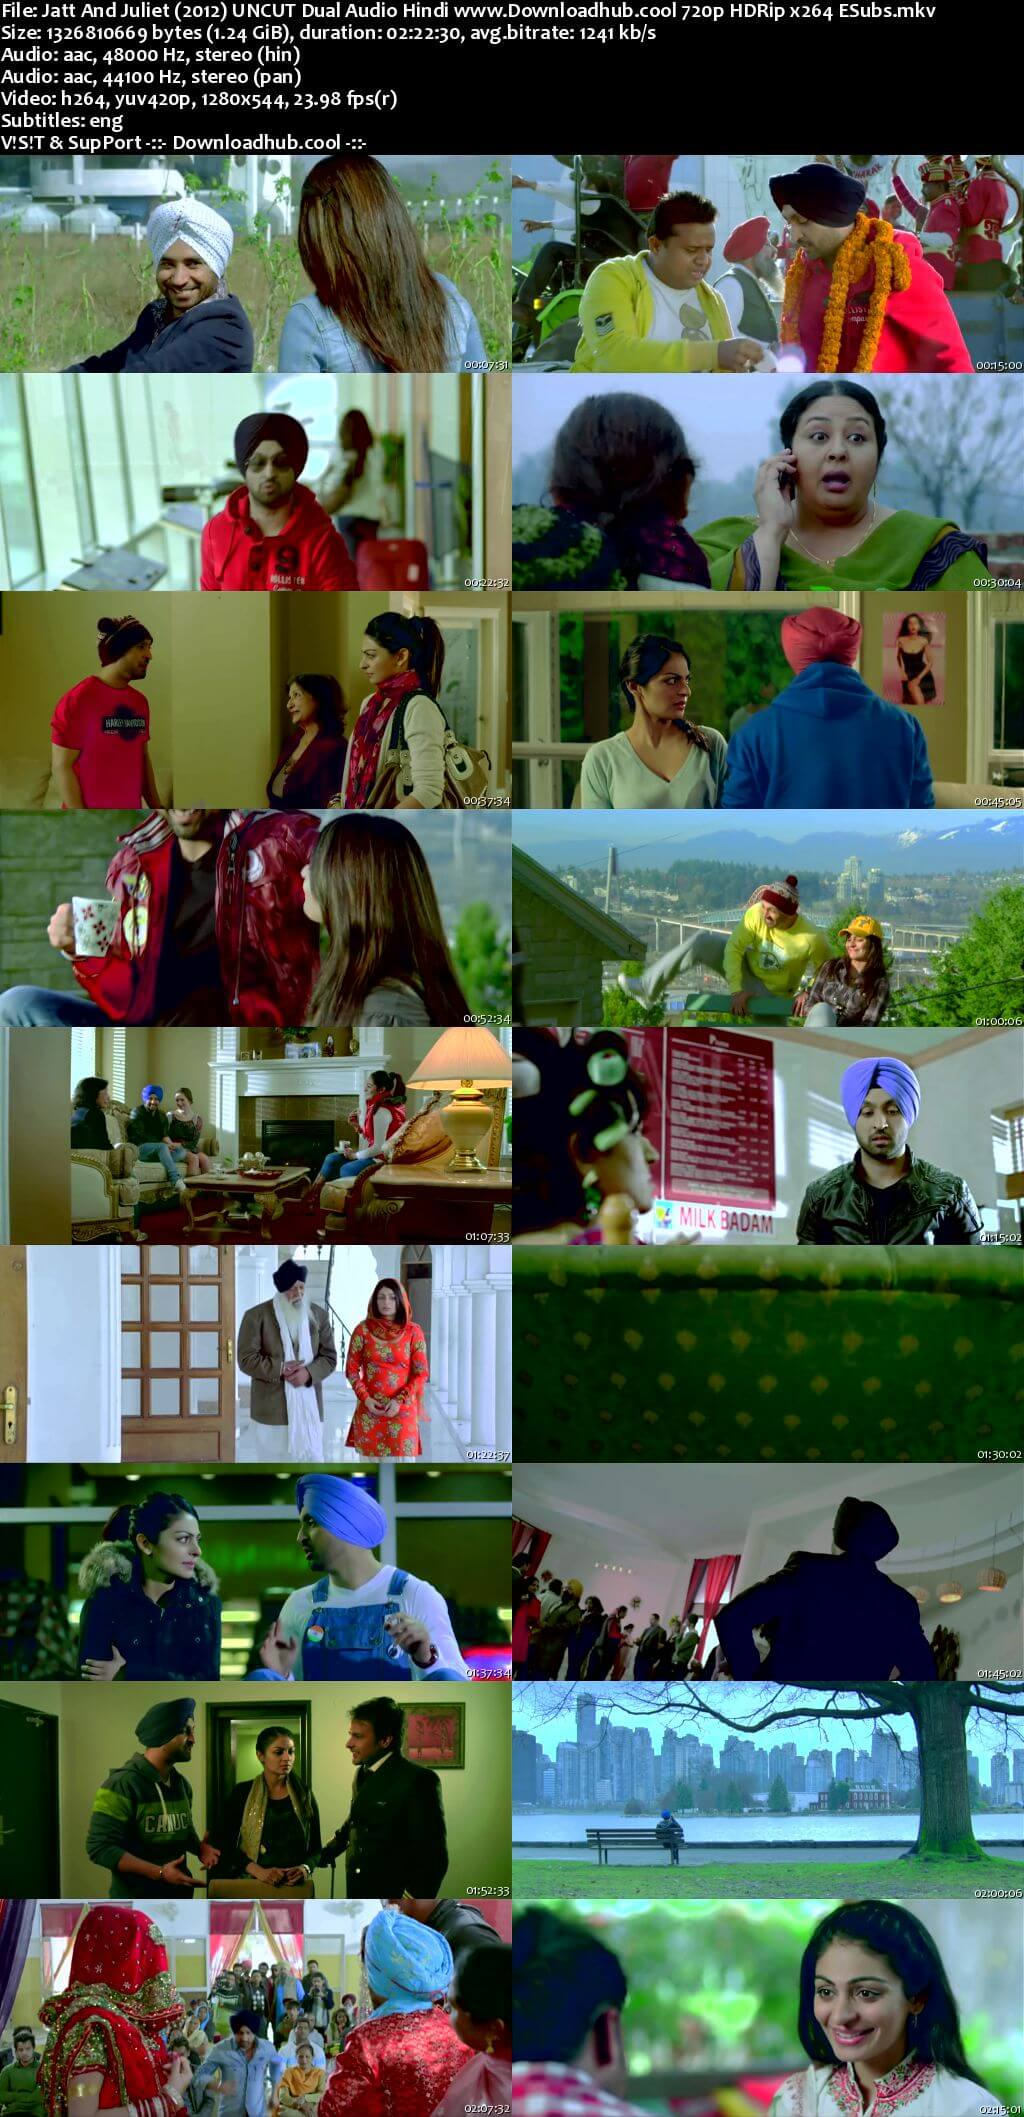 Jatt And Juliet 2012 Hindi Dual Audio 720p UNCUT DVDRip ESubs